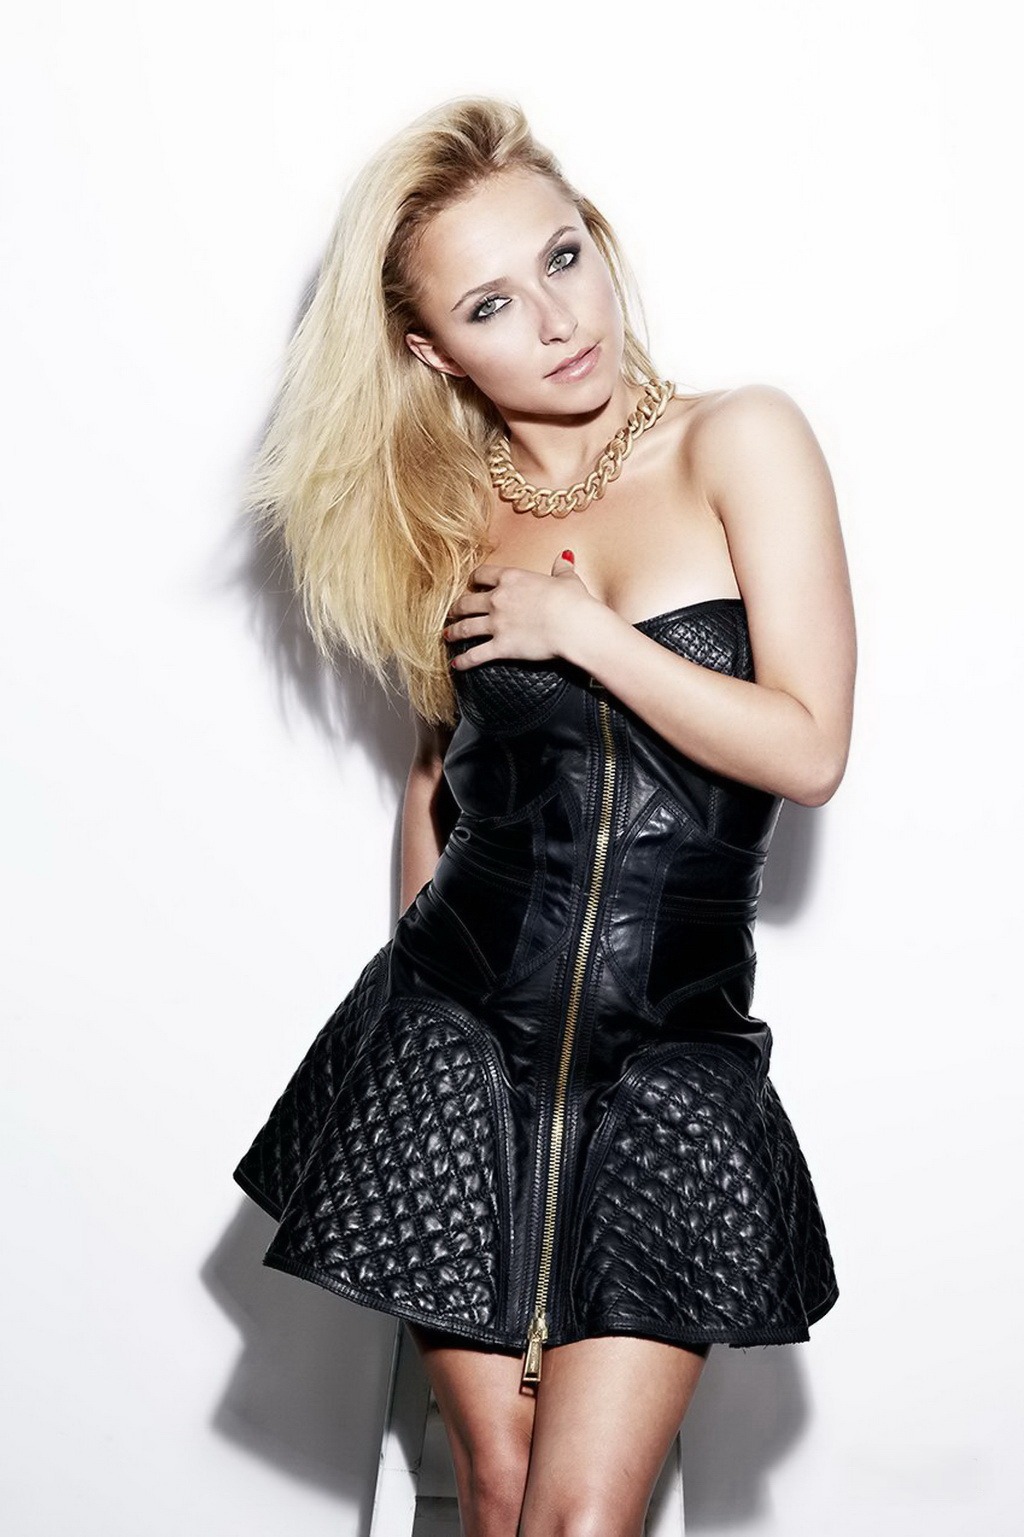 from Jay fuck of hayden panettiere